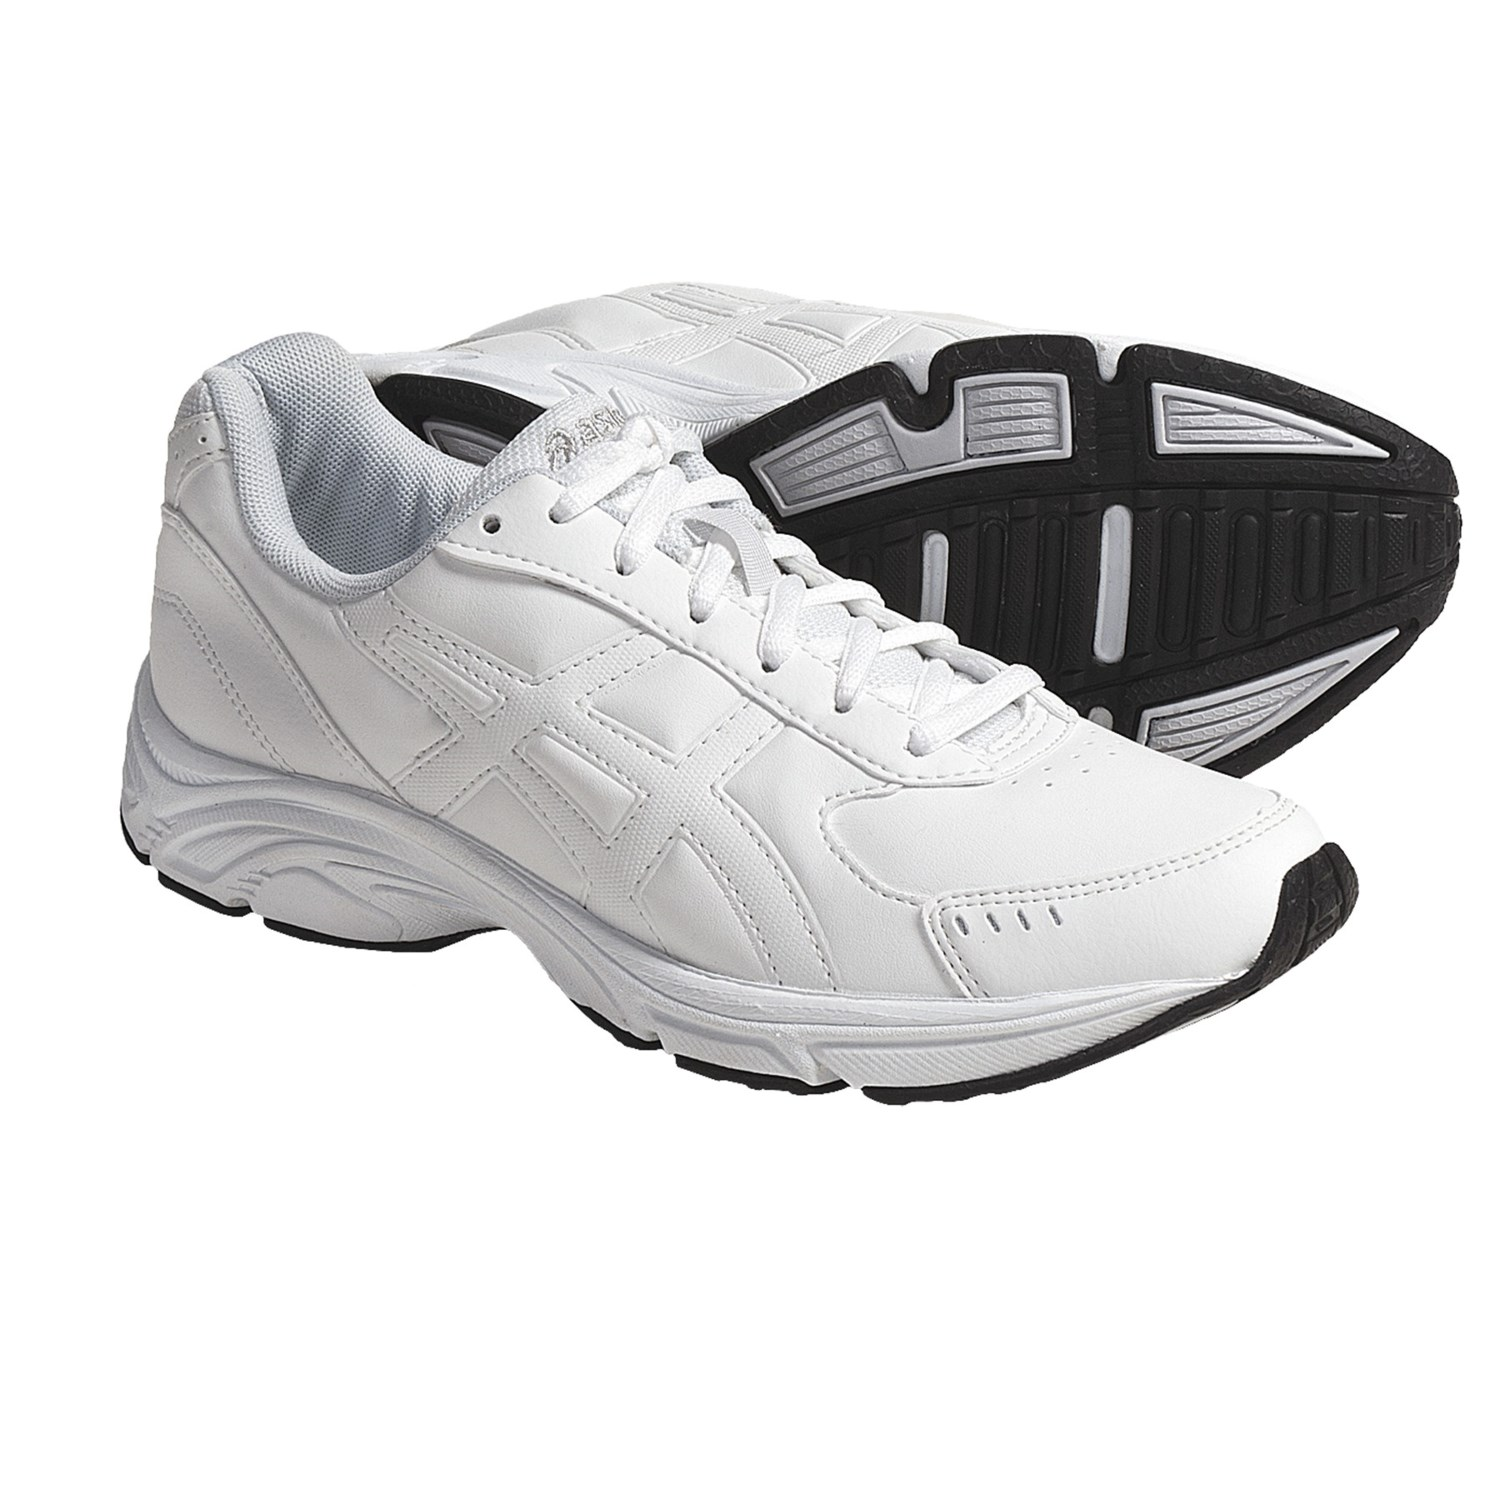 black walking shoes for women Reviews - Online Shopping Reviews on